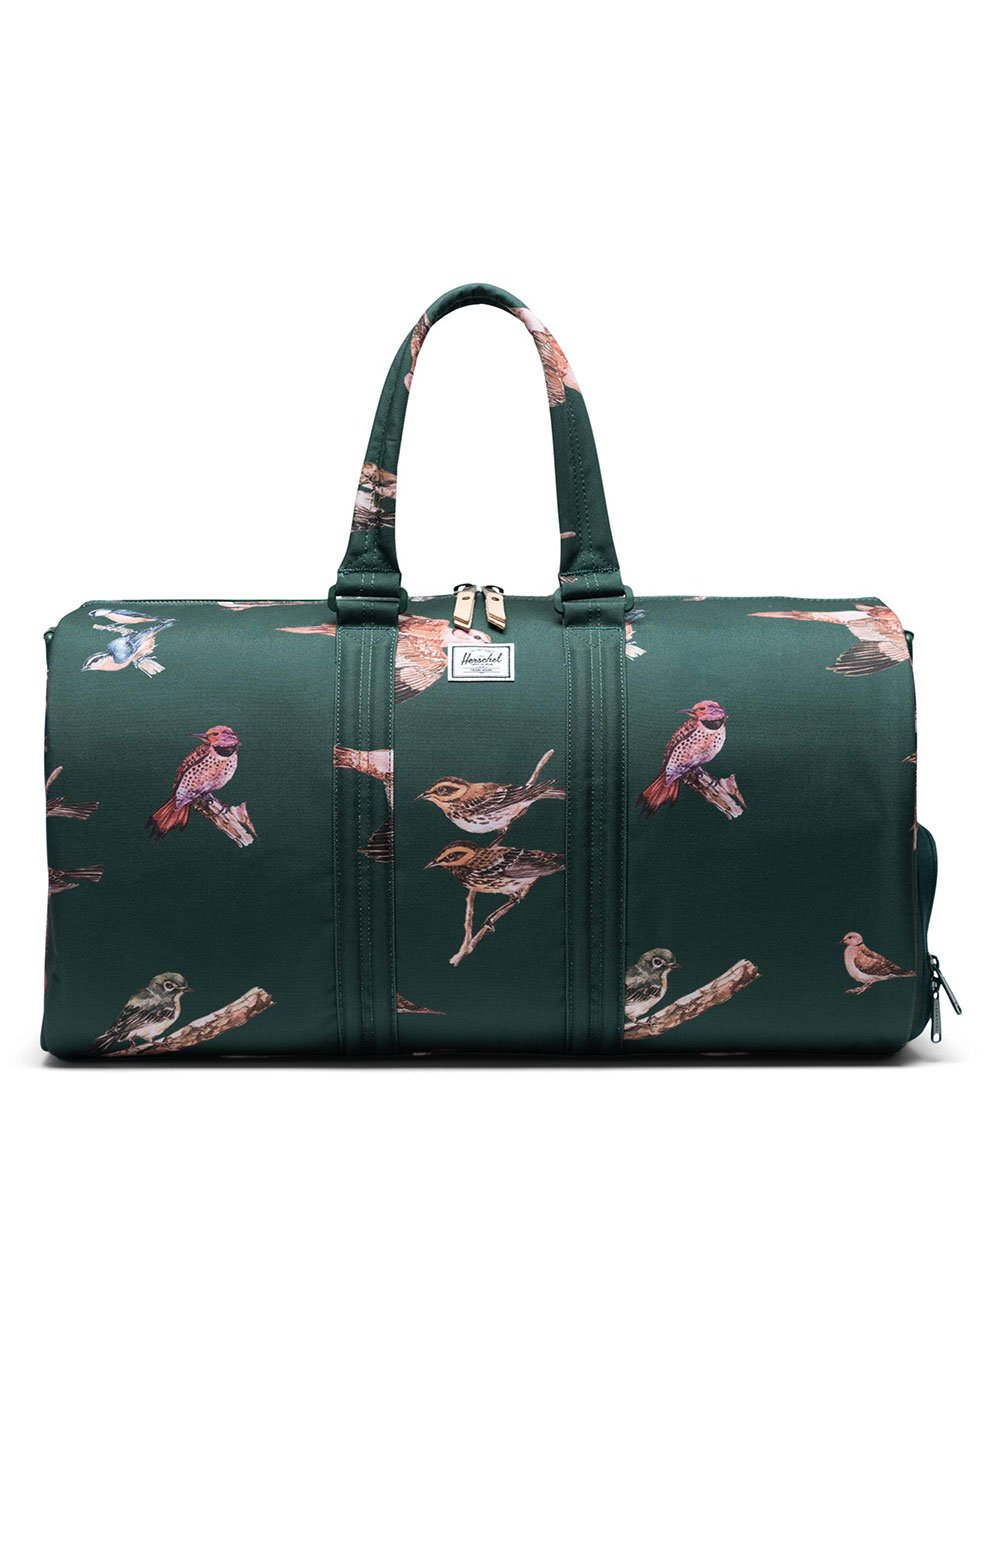 Novel Duffle Bag - Dark Green Birds